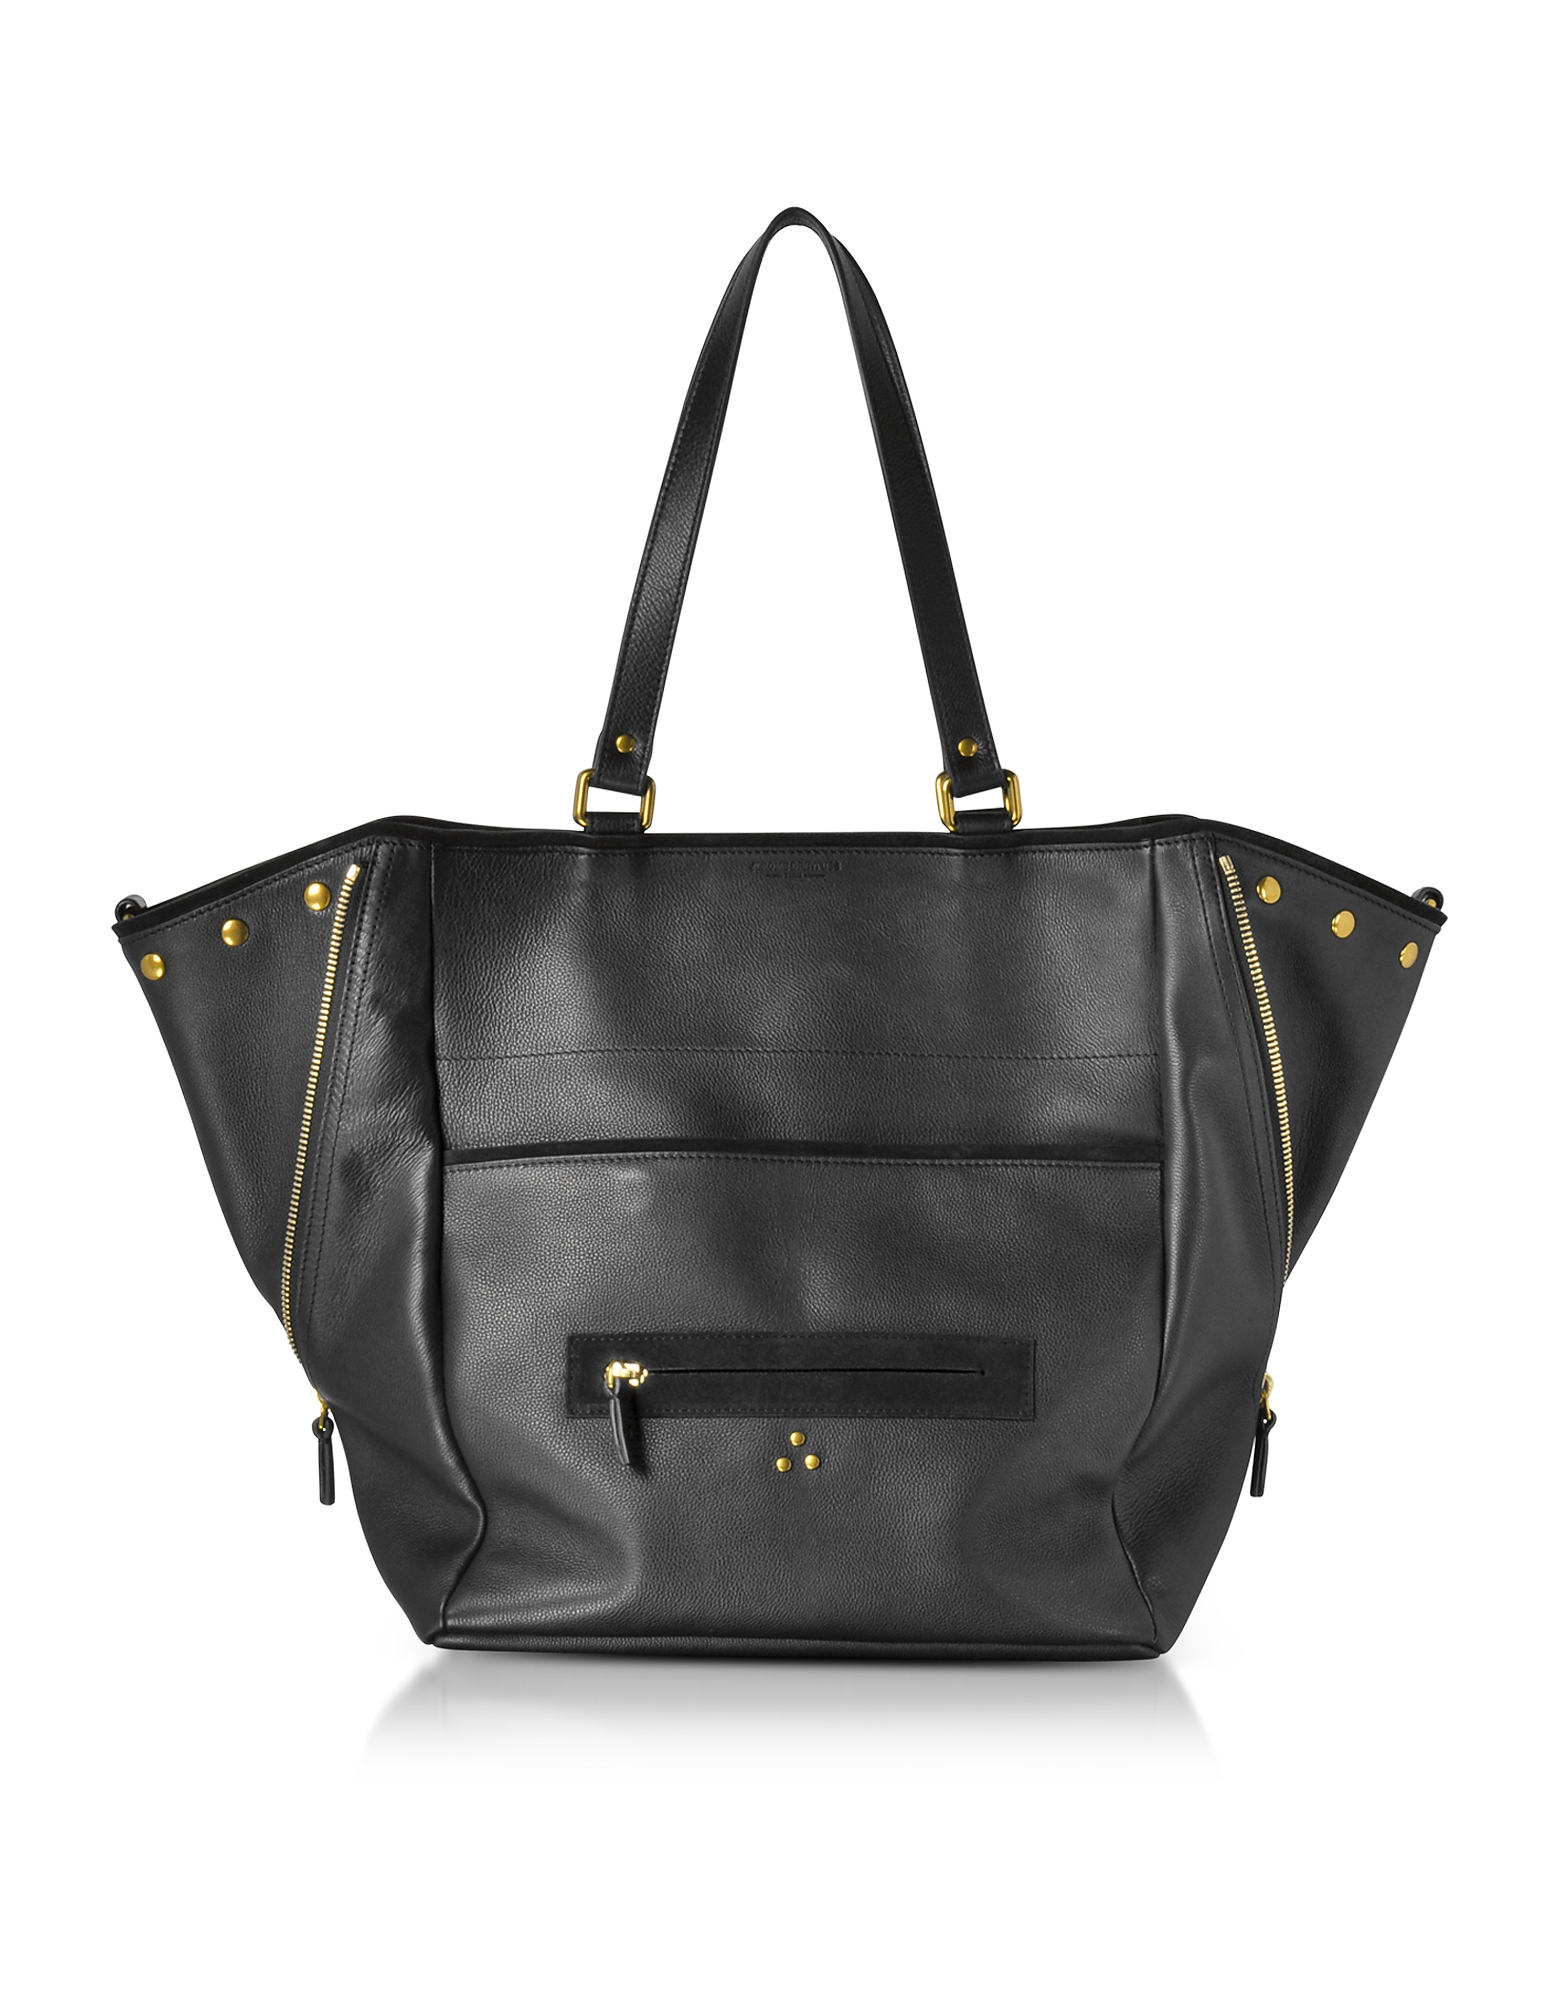 Jerome Dreyfuss Handbags, Serge Black Leather Tote Bag